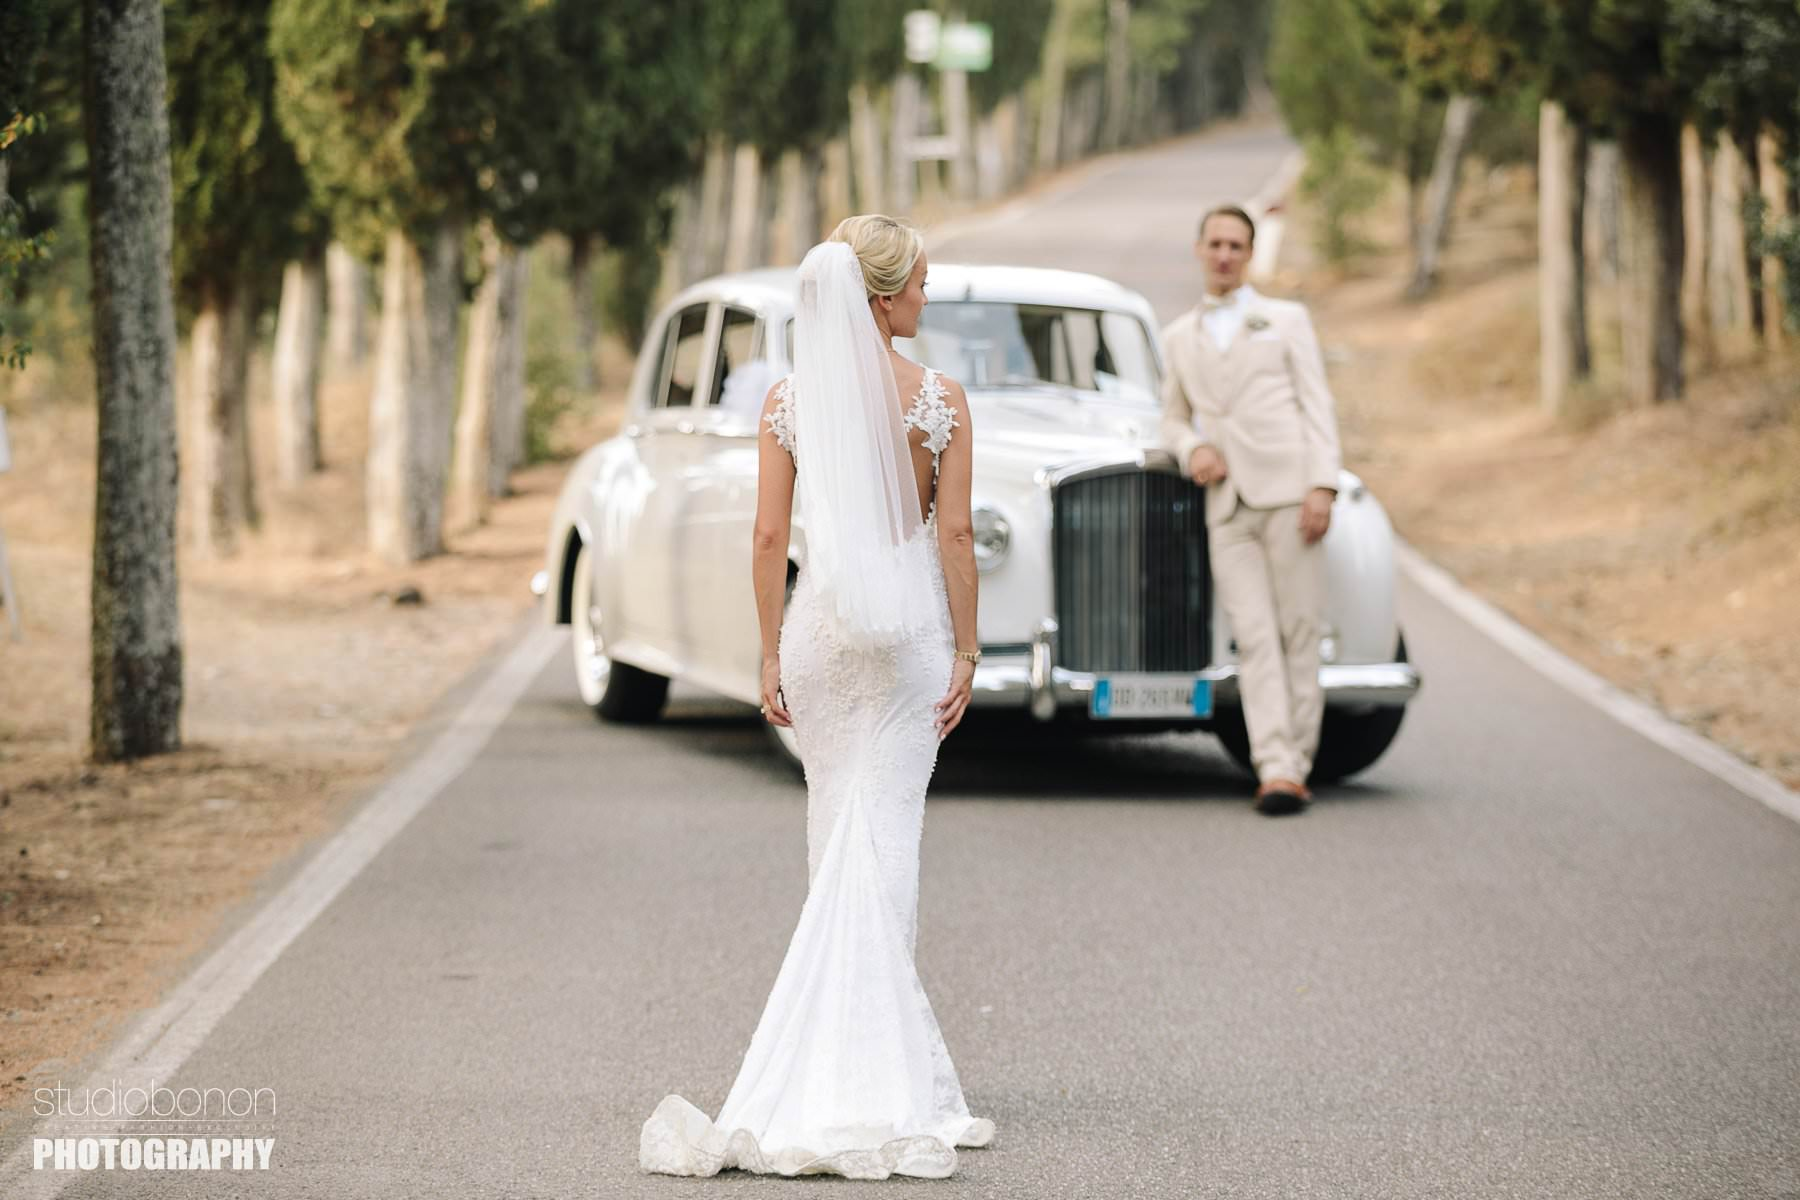 Lovely wedding portrait in Florence countryside at VIncigliata Castle, Fiesole with luxury vintage car in background